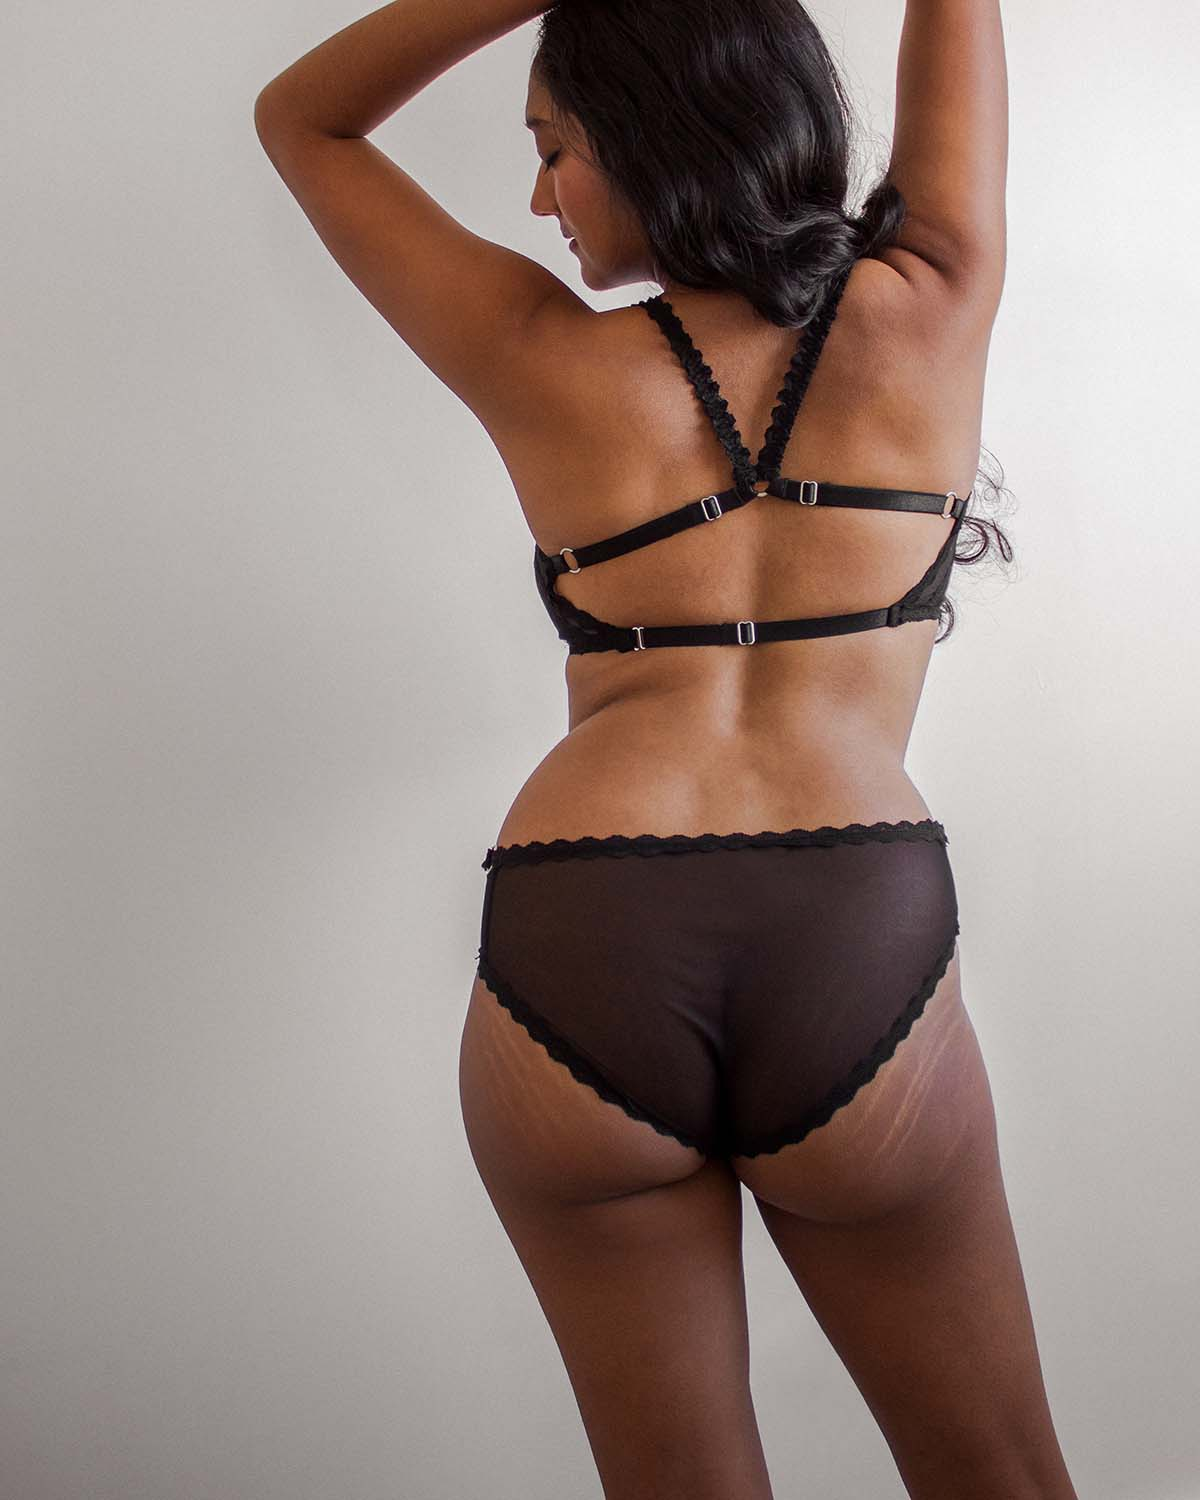 Black Strappy Sadie Panty - L/XL left!